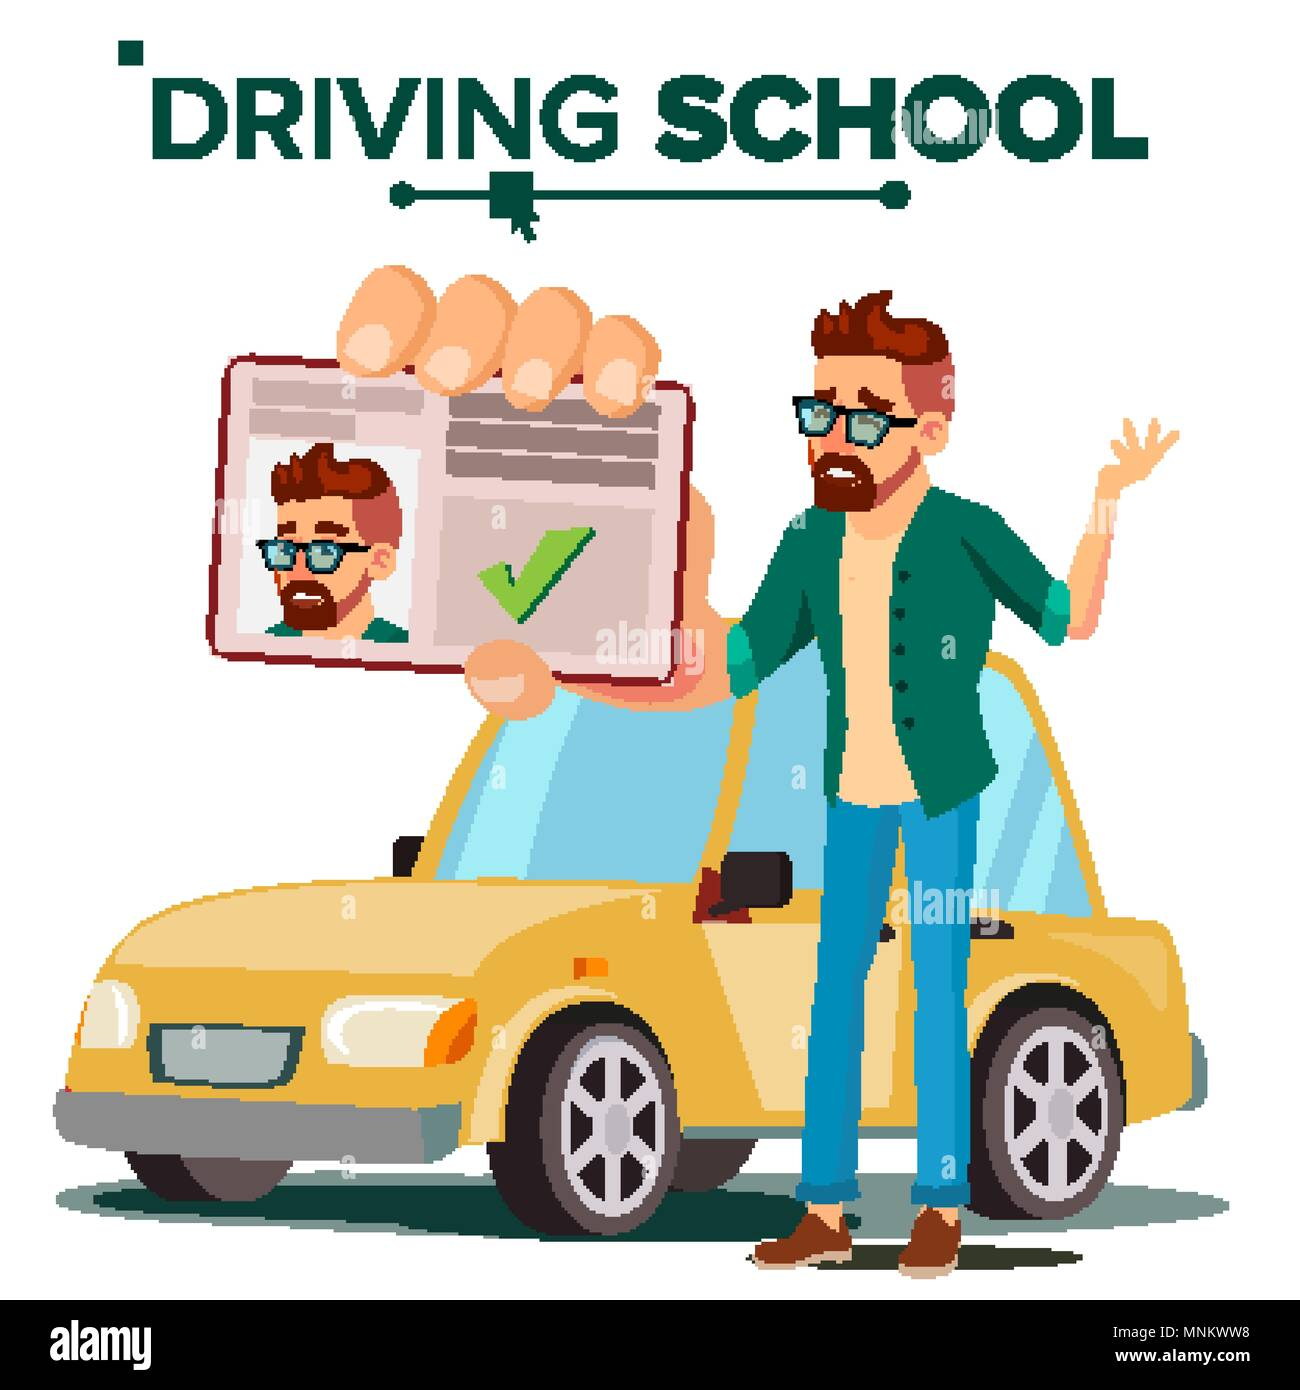 how to pass driving exam